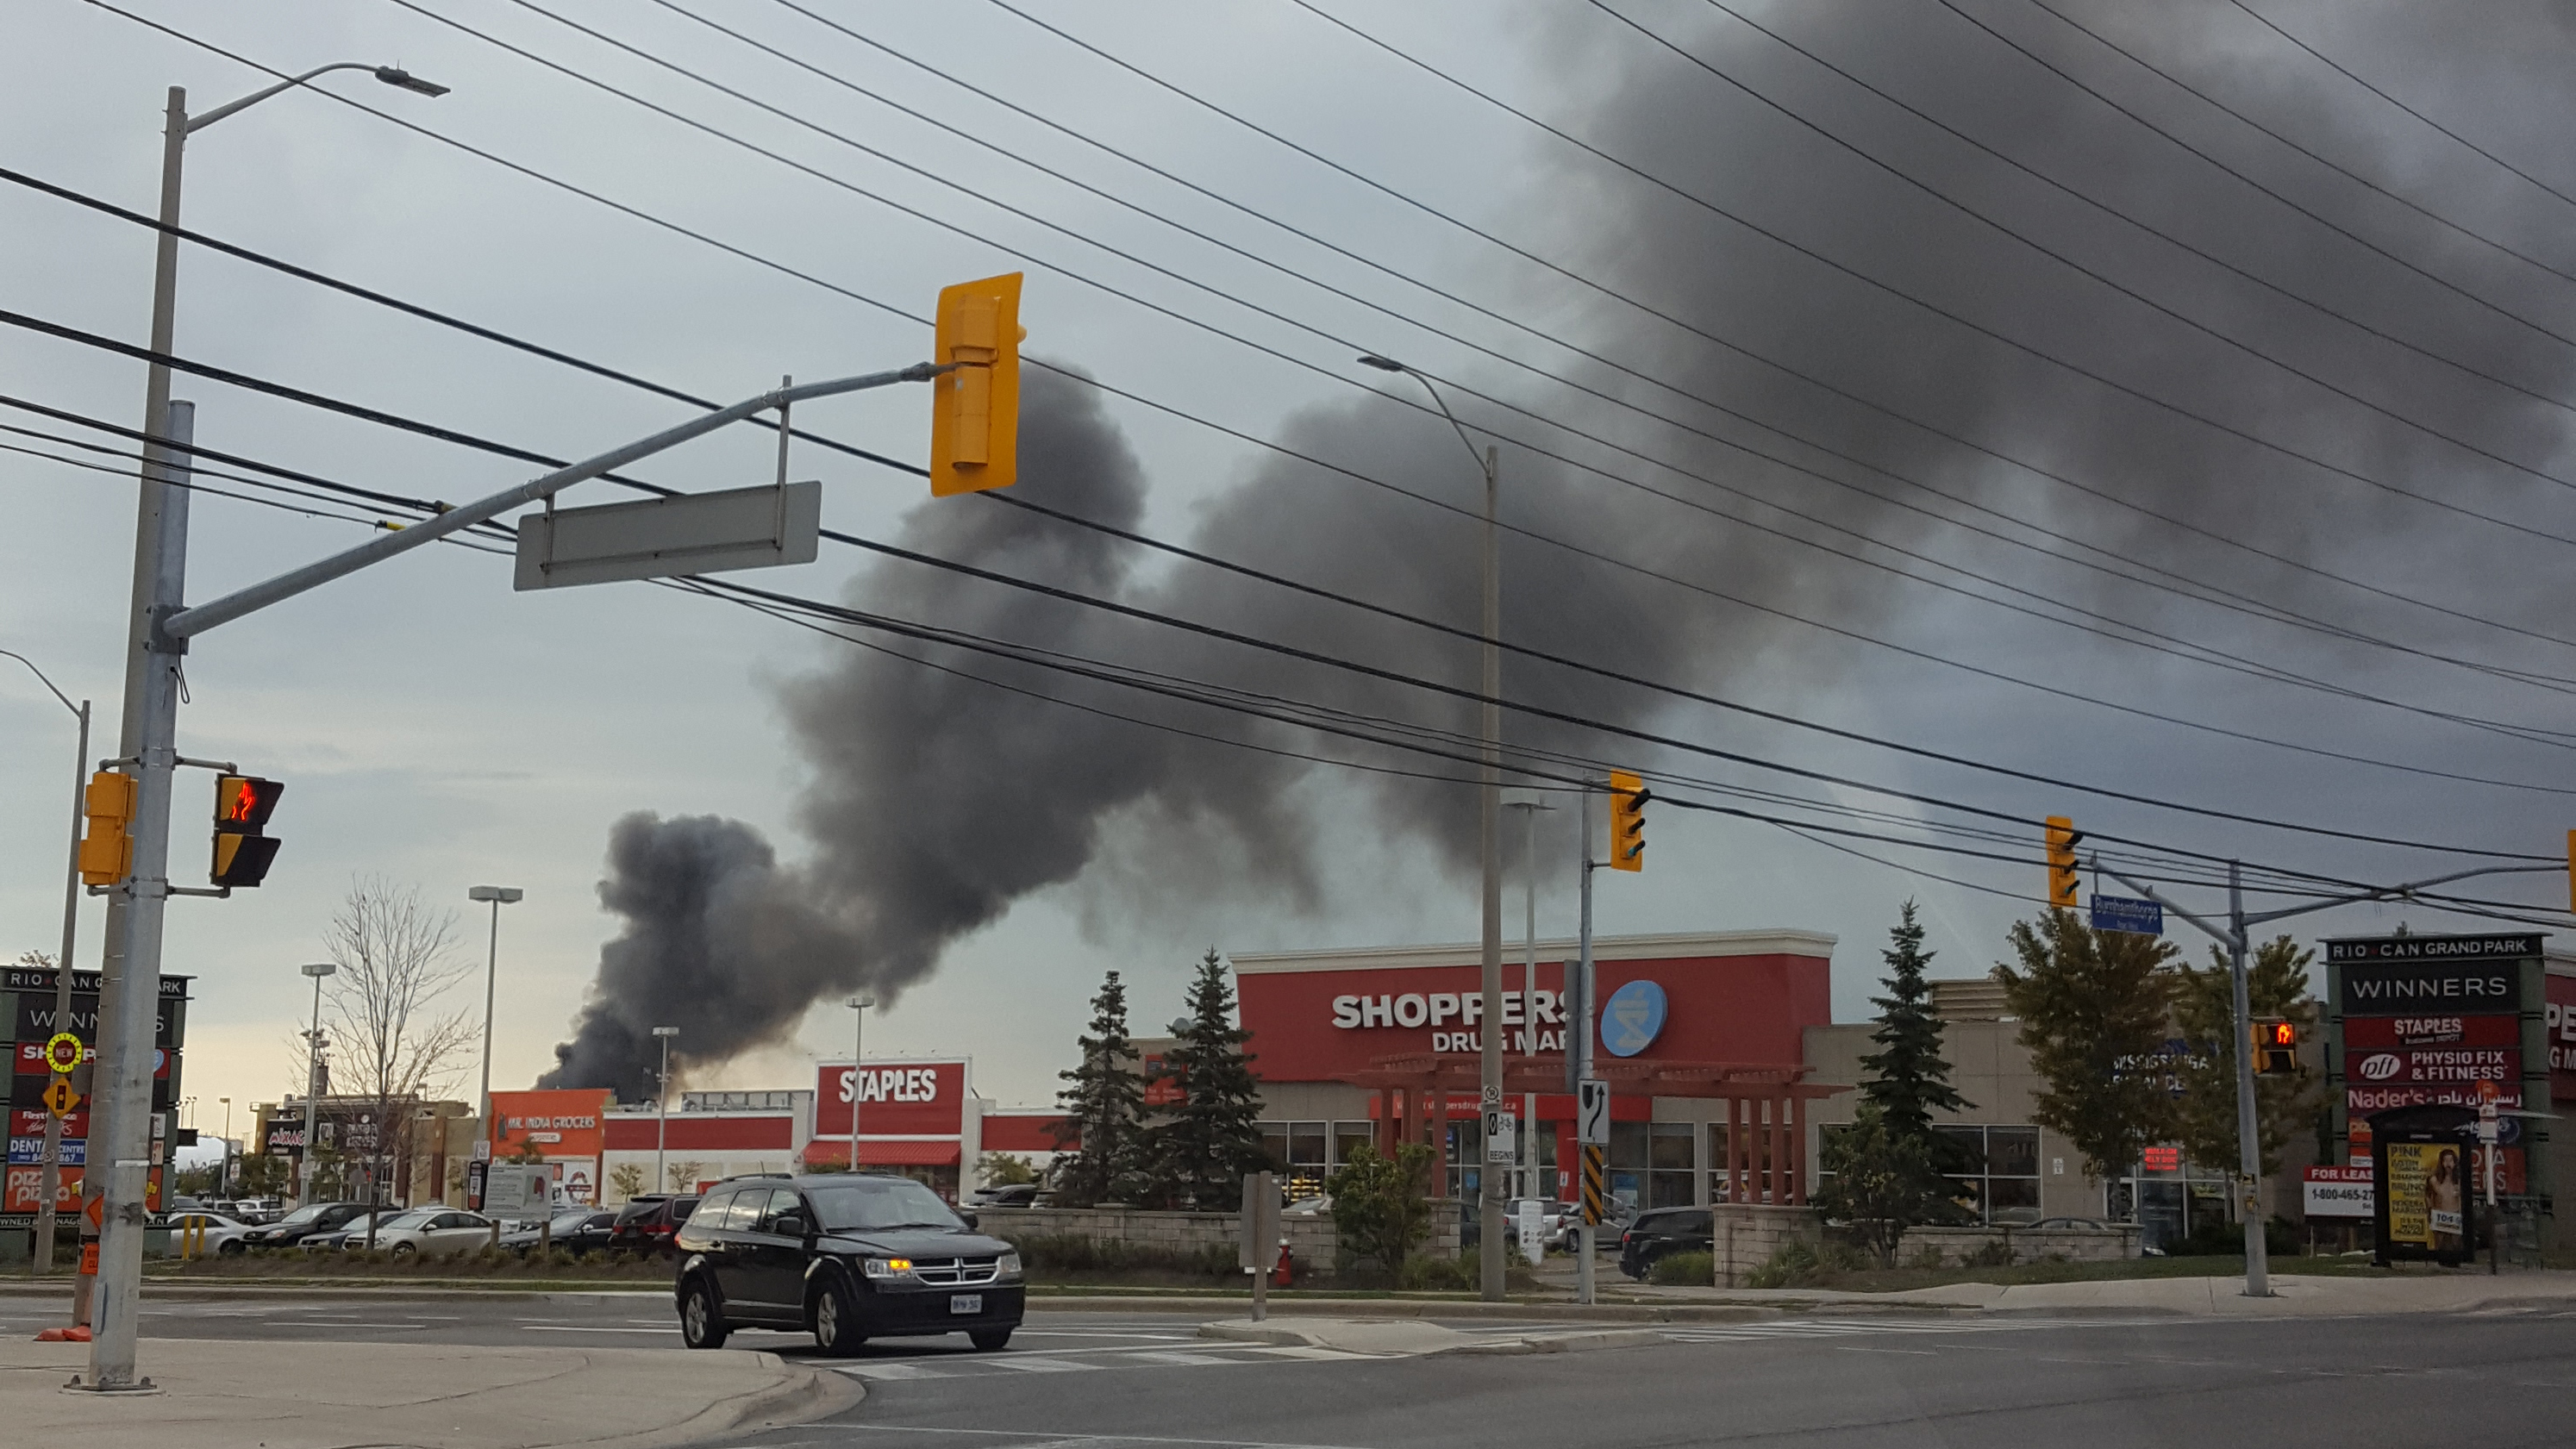 A fire broke out in a Mississauga auto scrapyard, Sept. 26, 2016 Photo courtesy Rosemary Mah